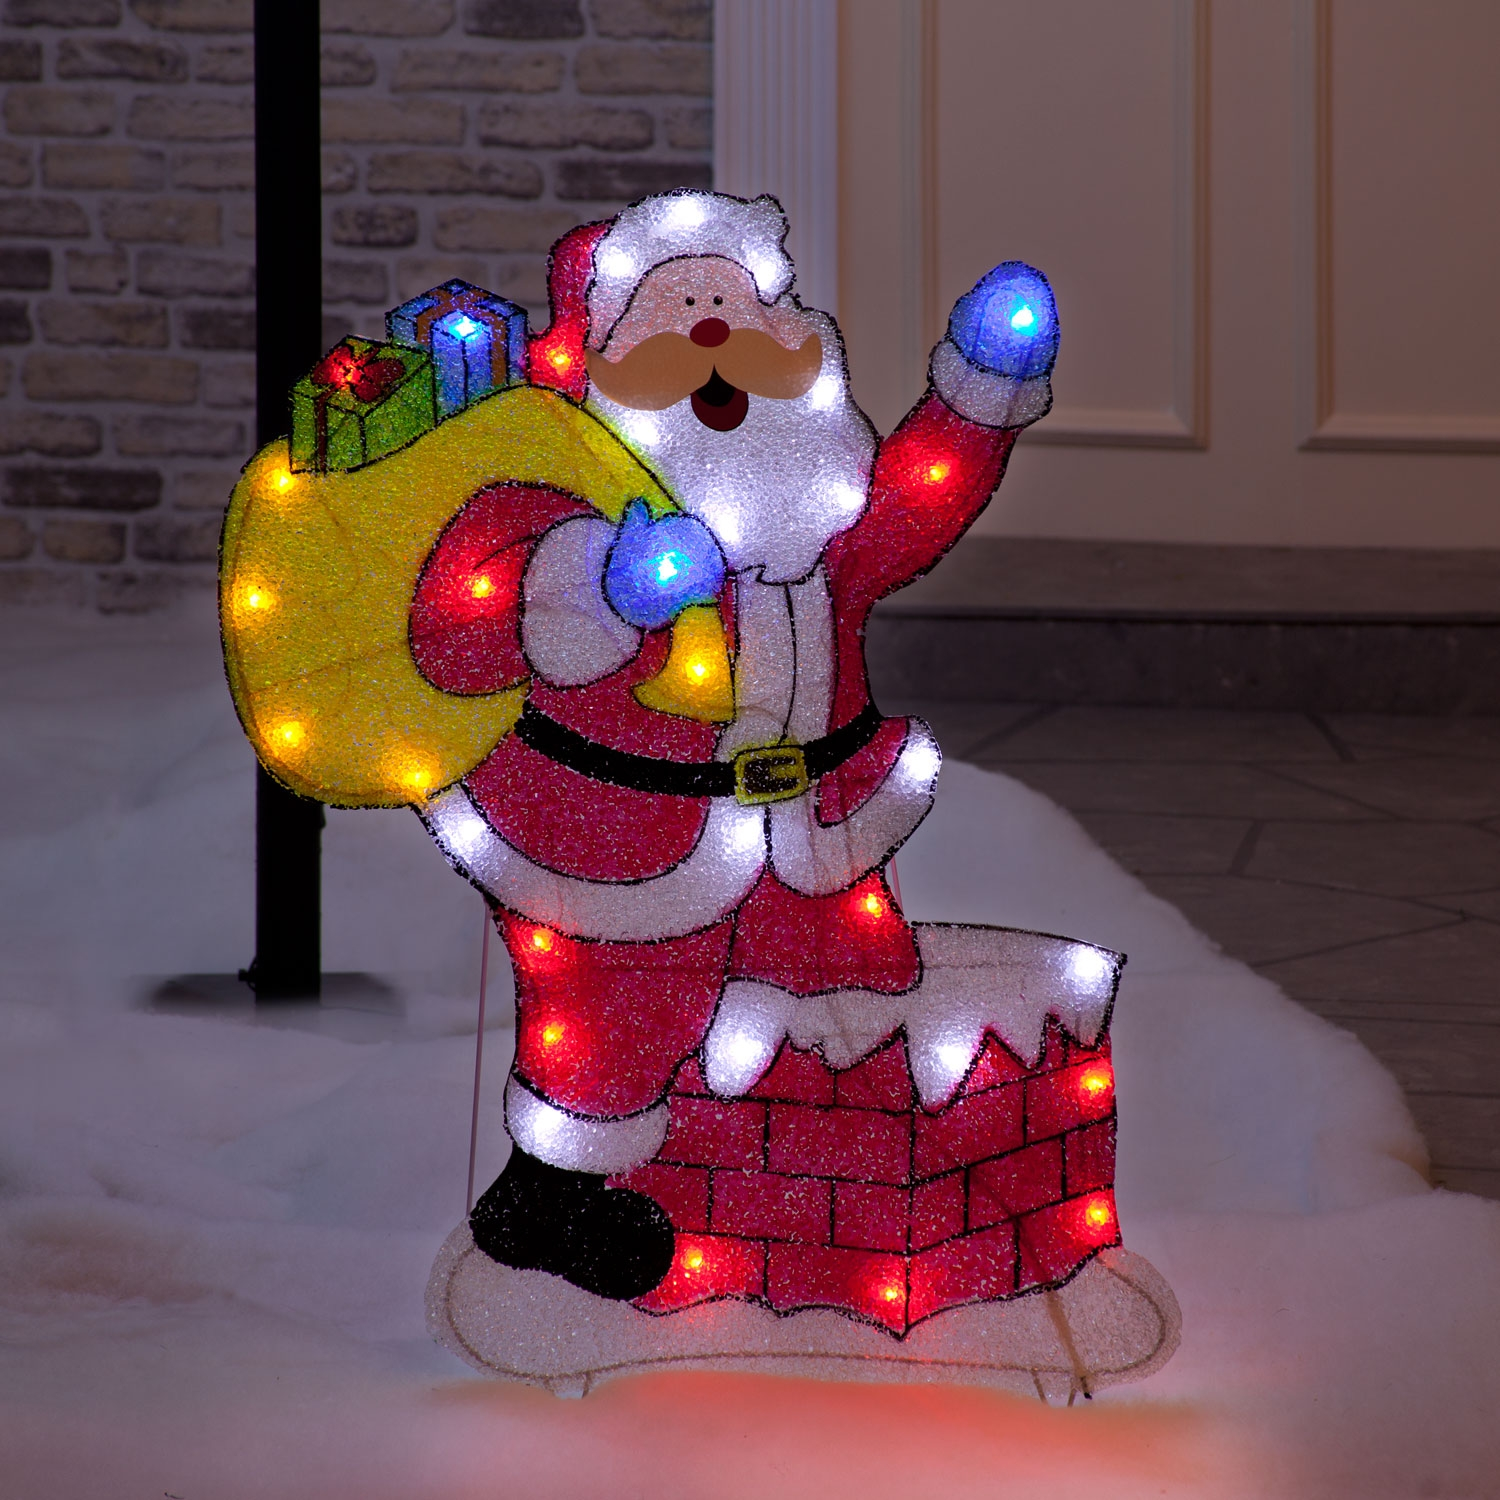 Christmas Trees and Lights Santa Claus on Chimney Ground Light